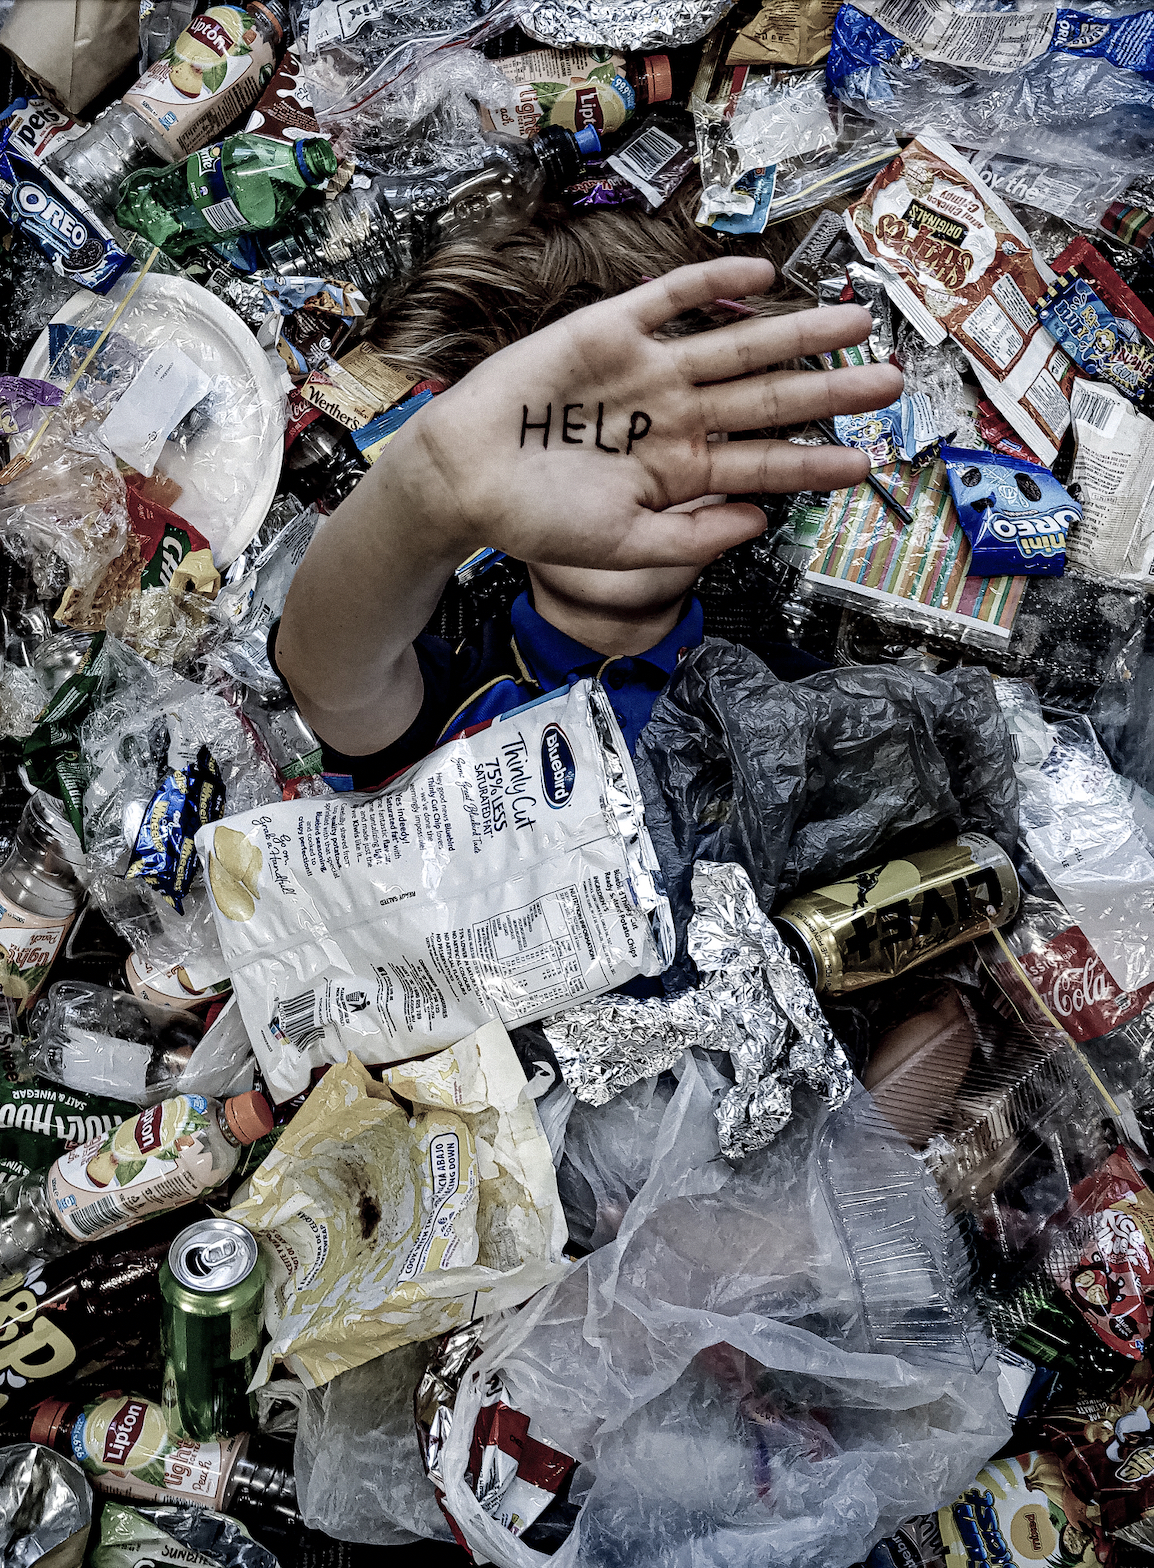 #Litter Less Campaign - Reduce Environmental Pollution!